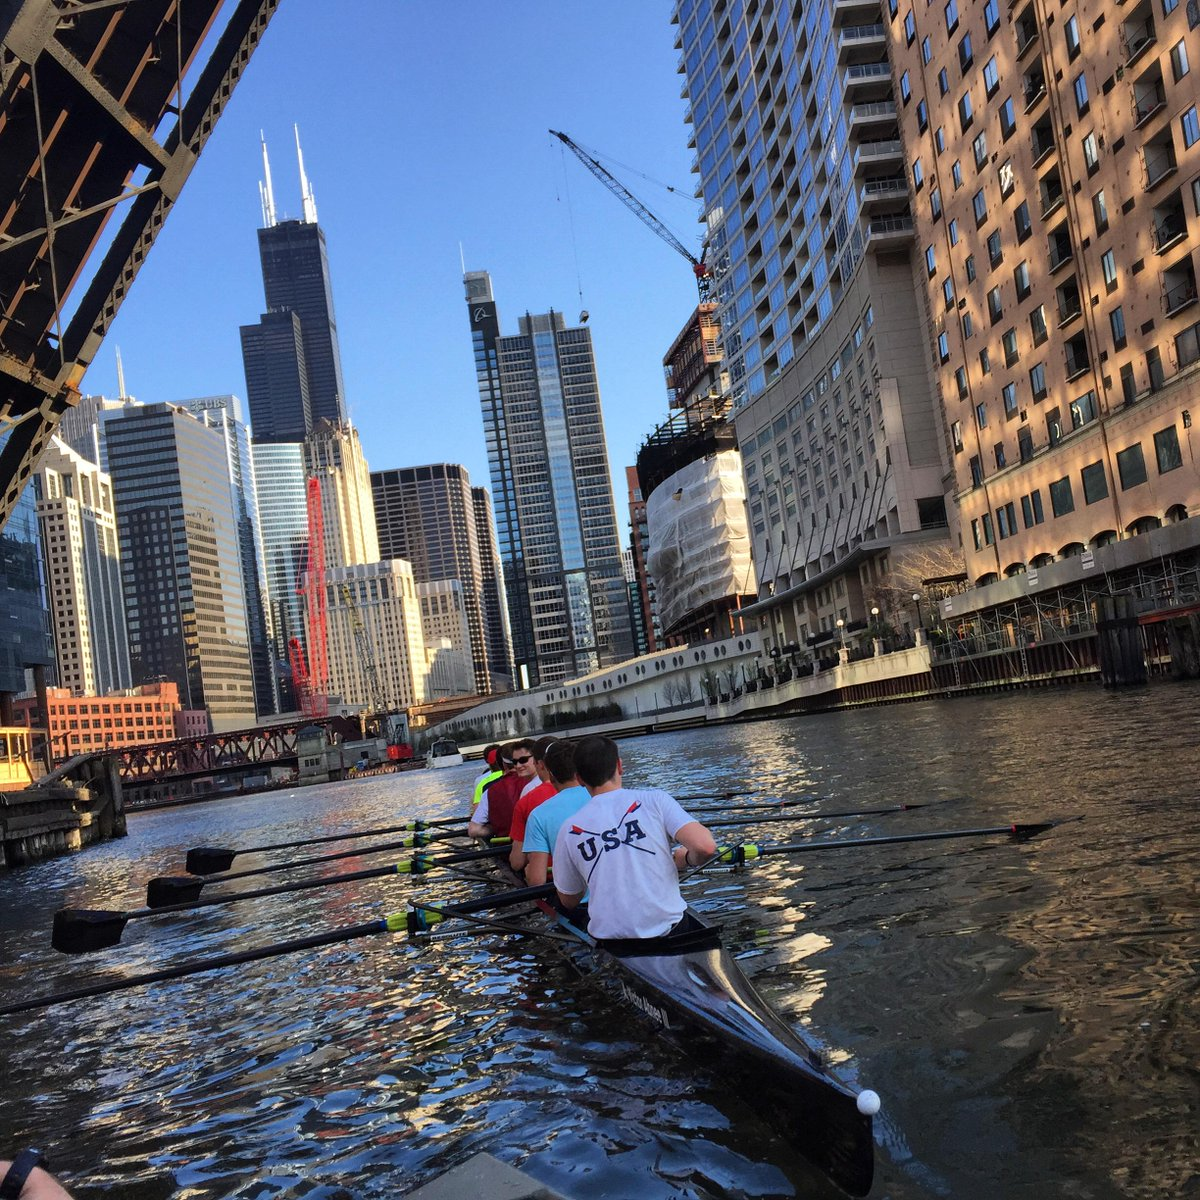 @usrowing @row2k check our awesome @chicagorowing Boys V8 training downtown